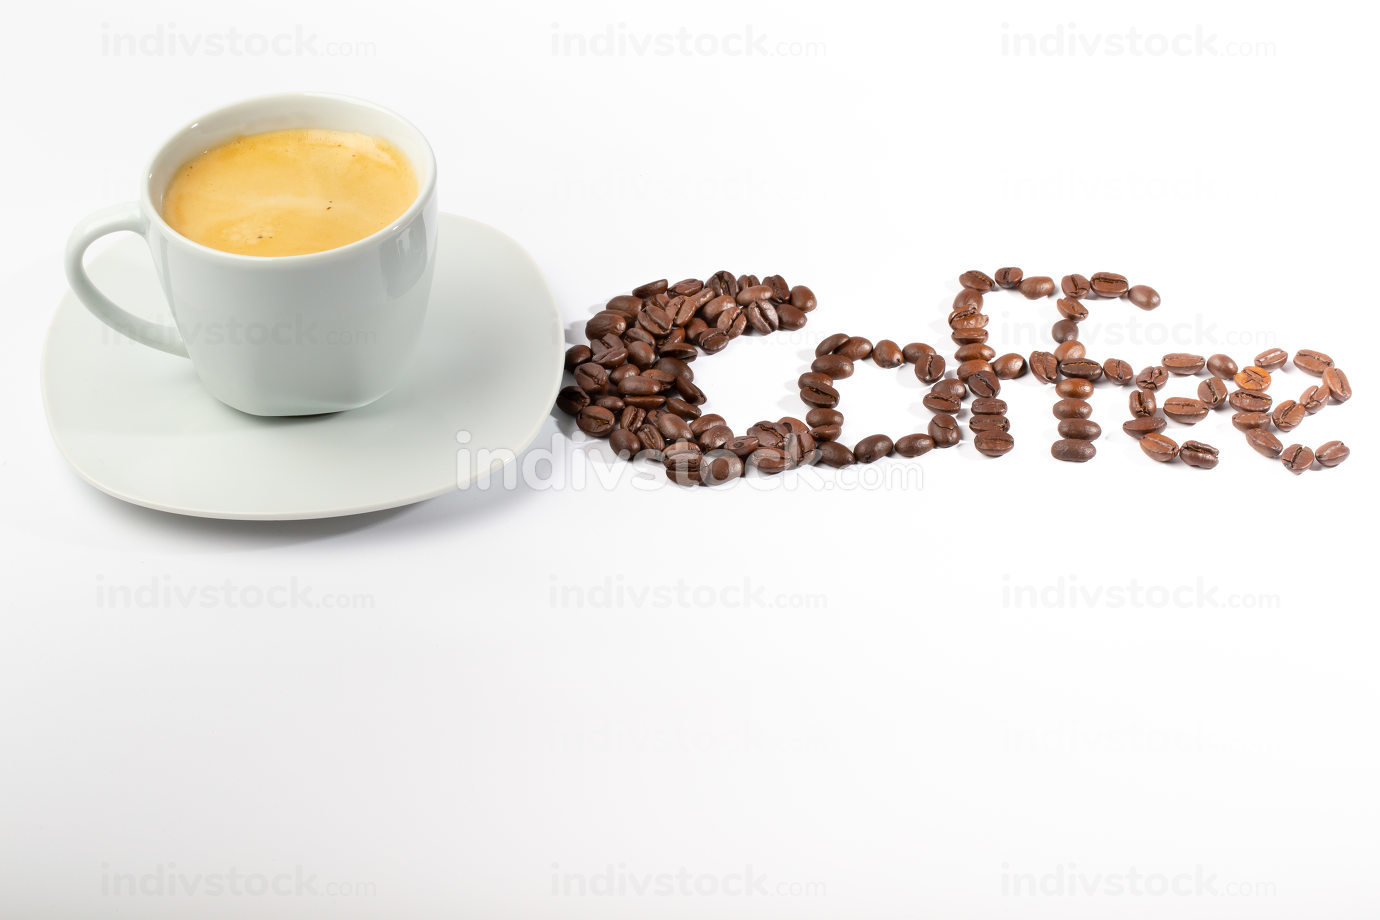 White cup with coffee on a white background and coffee beans